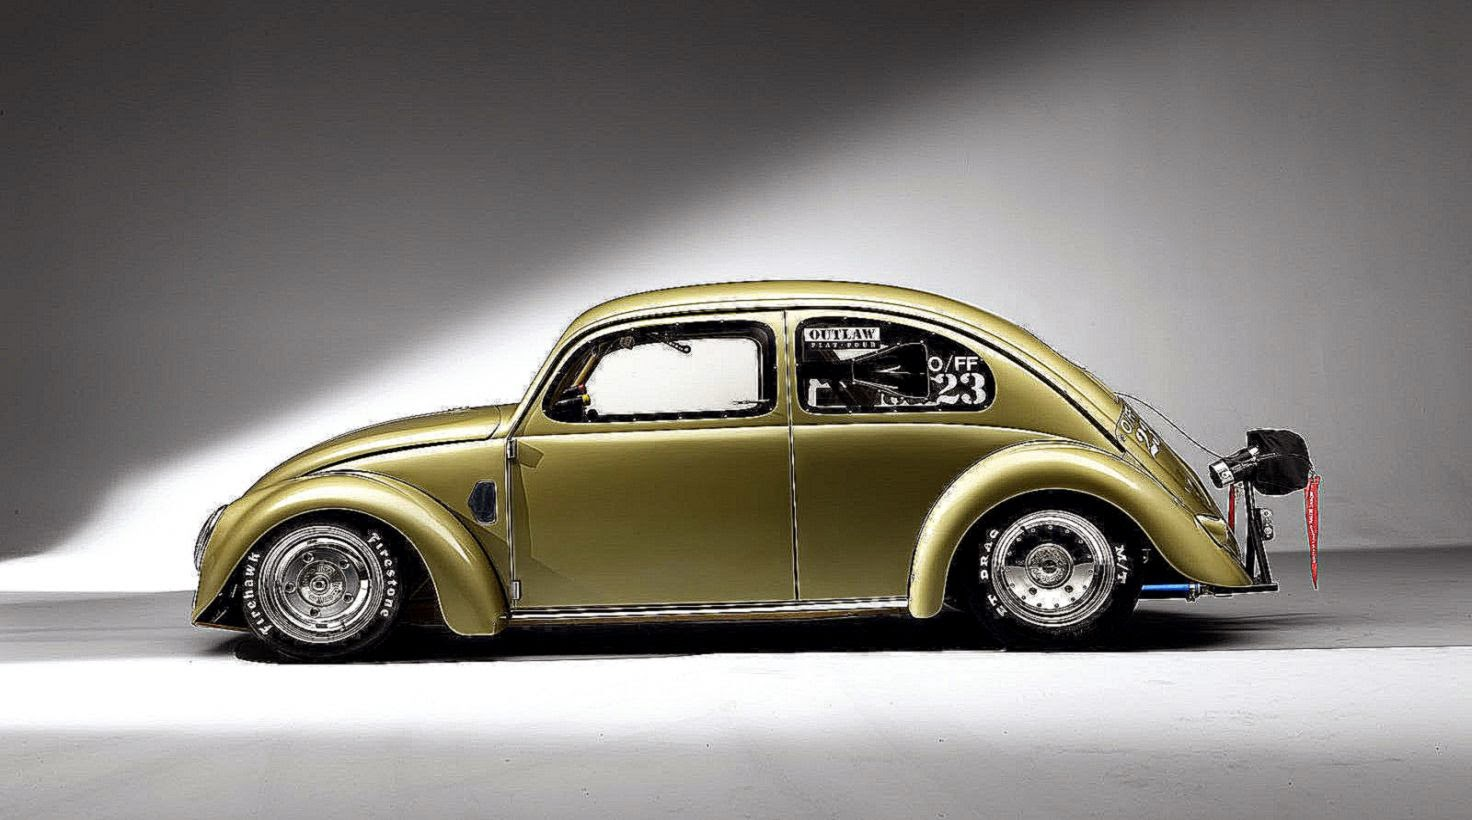 Classic Car Volkswagen Beetle Wallpaper Desktop Best HD Wallpapers 1472x820